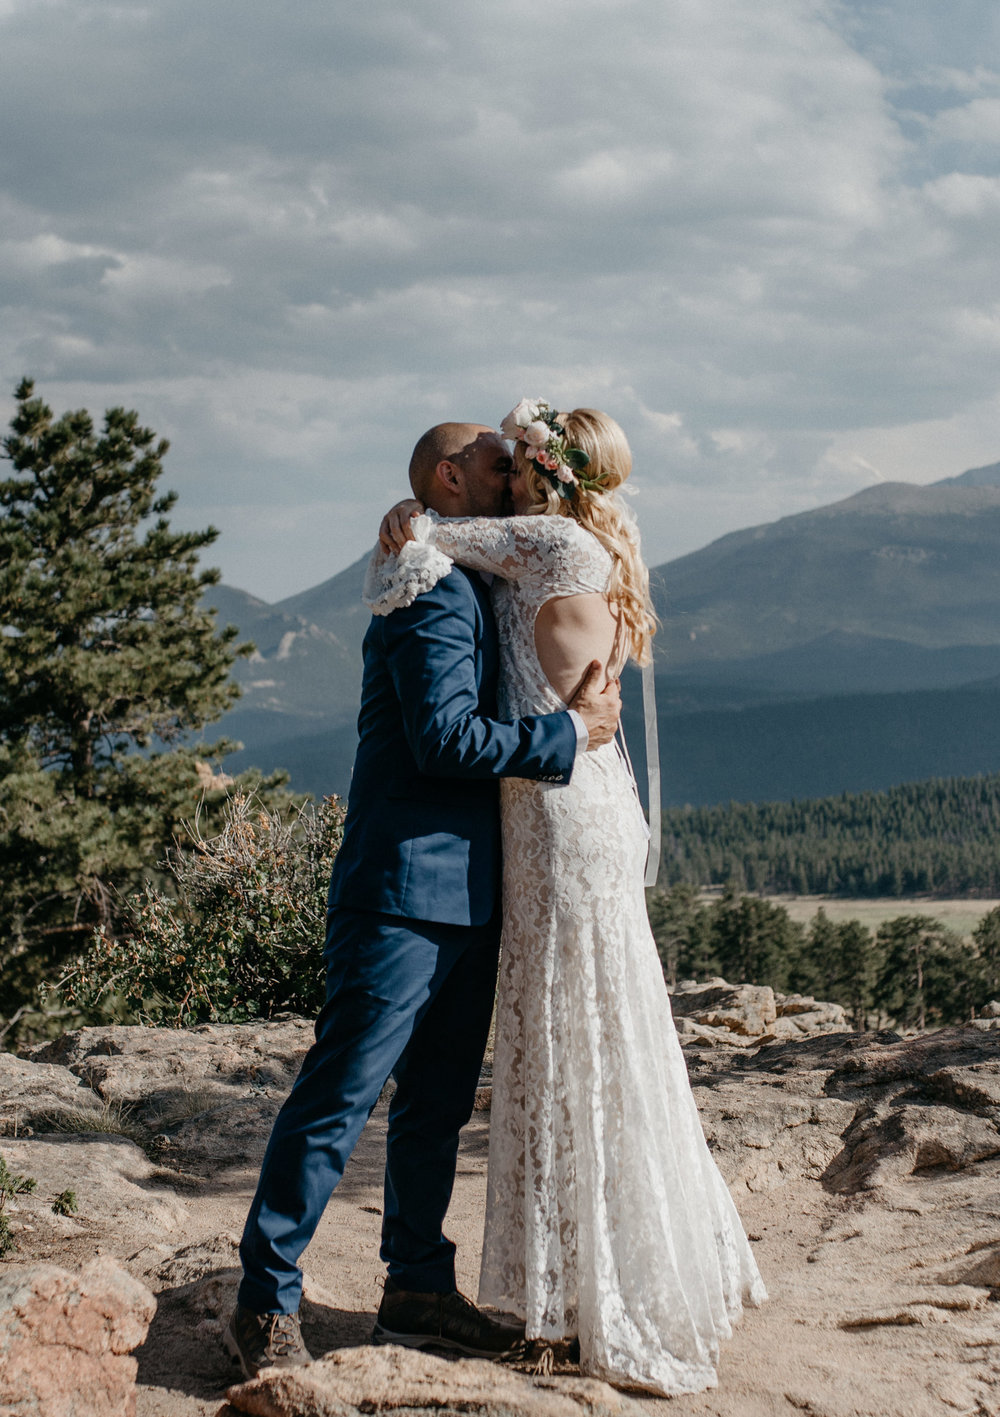 3M Curve elopement in Rocky Mountain National Park. First kiss photo by Alyssa Reinhold, Colorado elopement photographer.